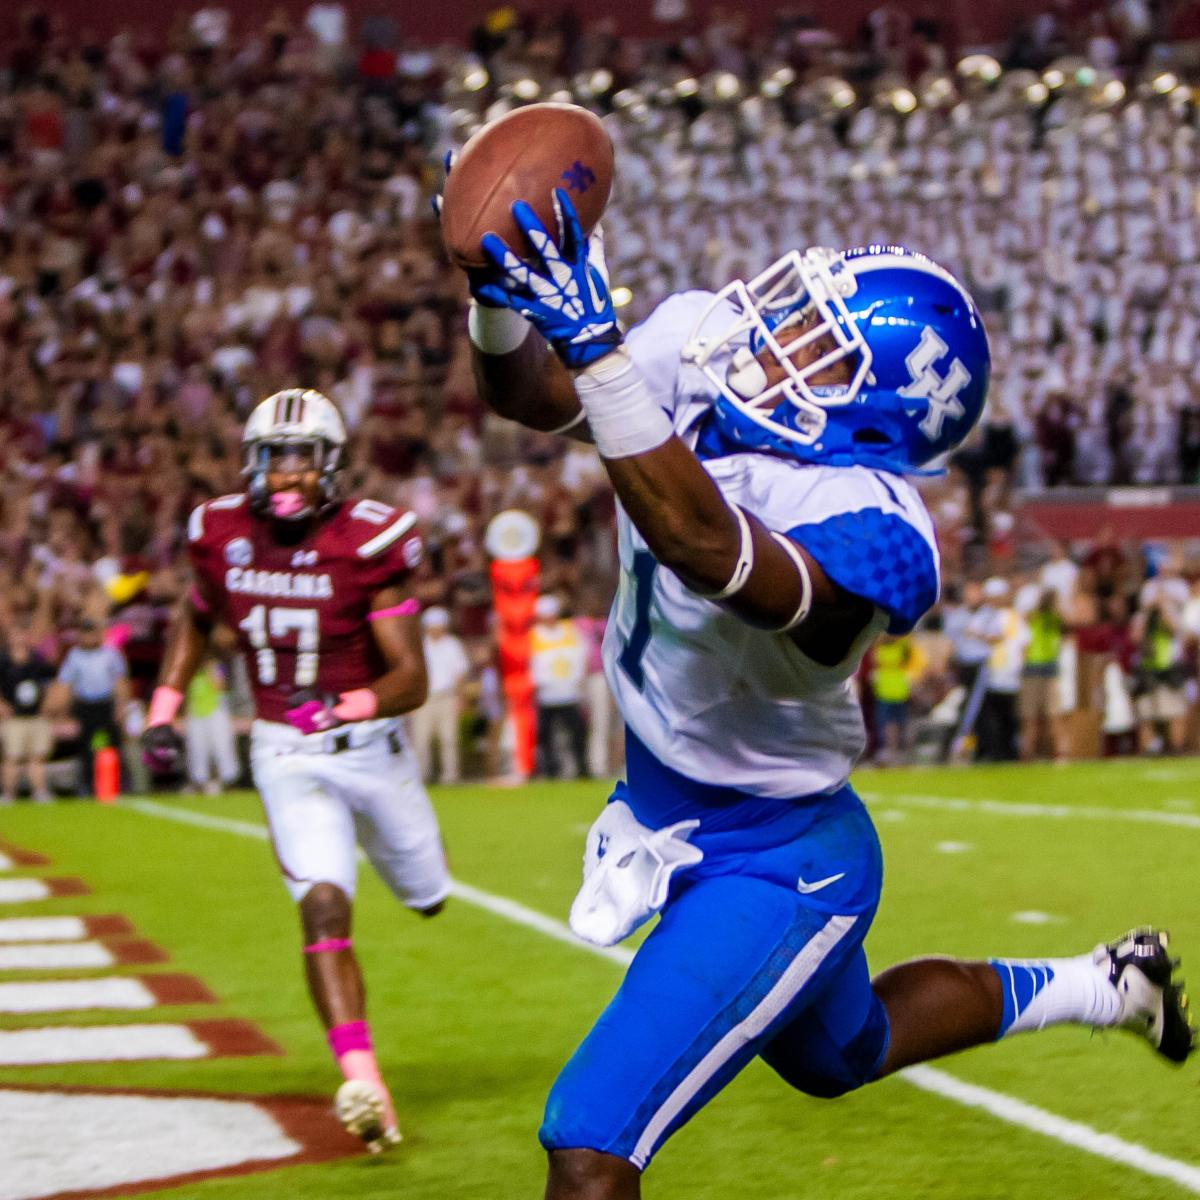 Kentucky Football: Mark Stoops and the Wildcats Have ...